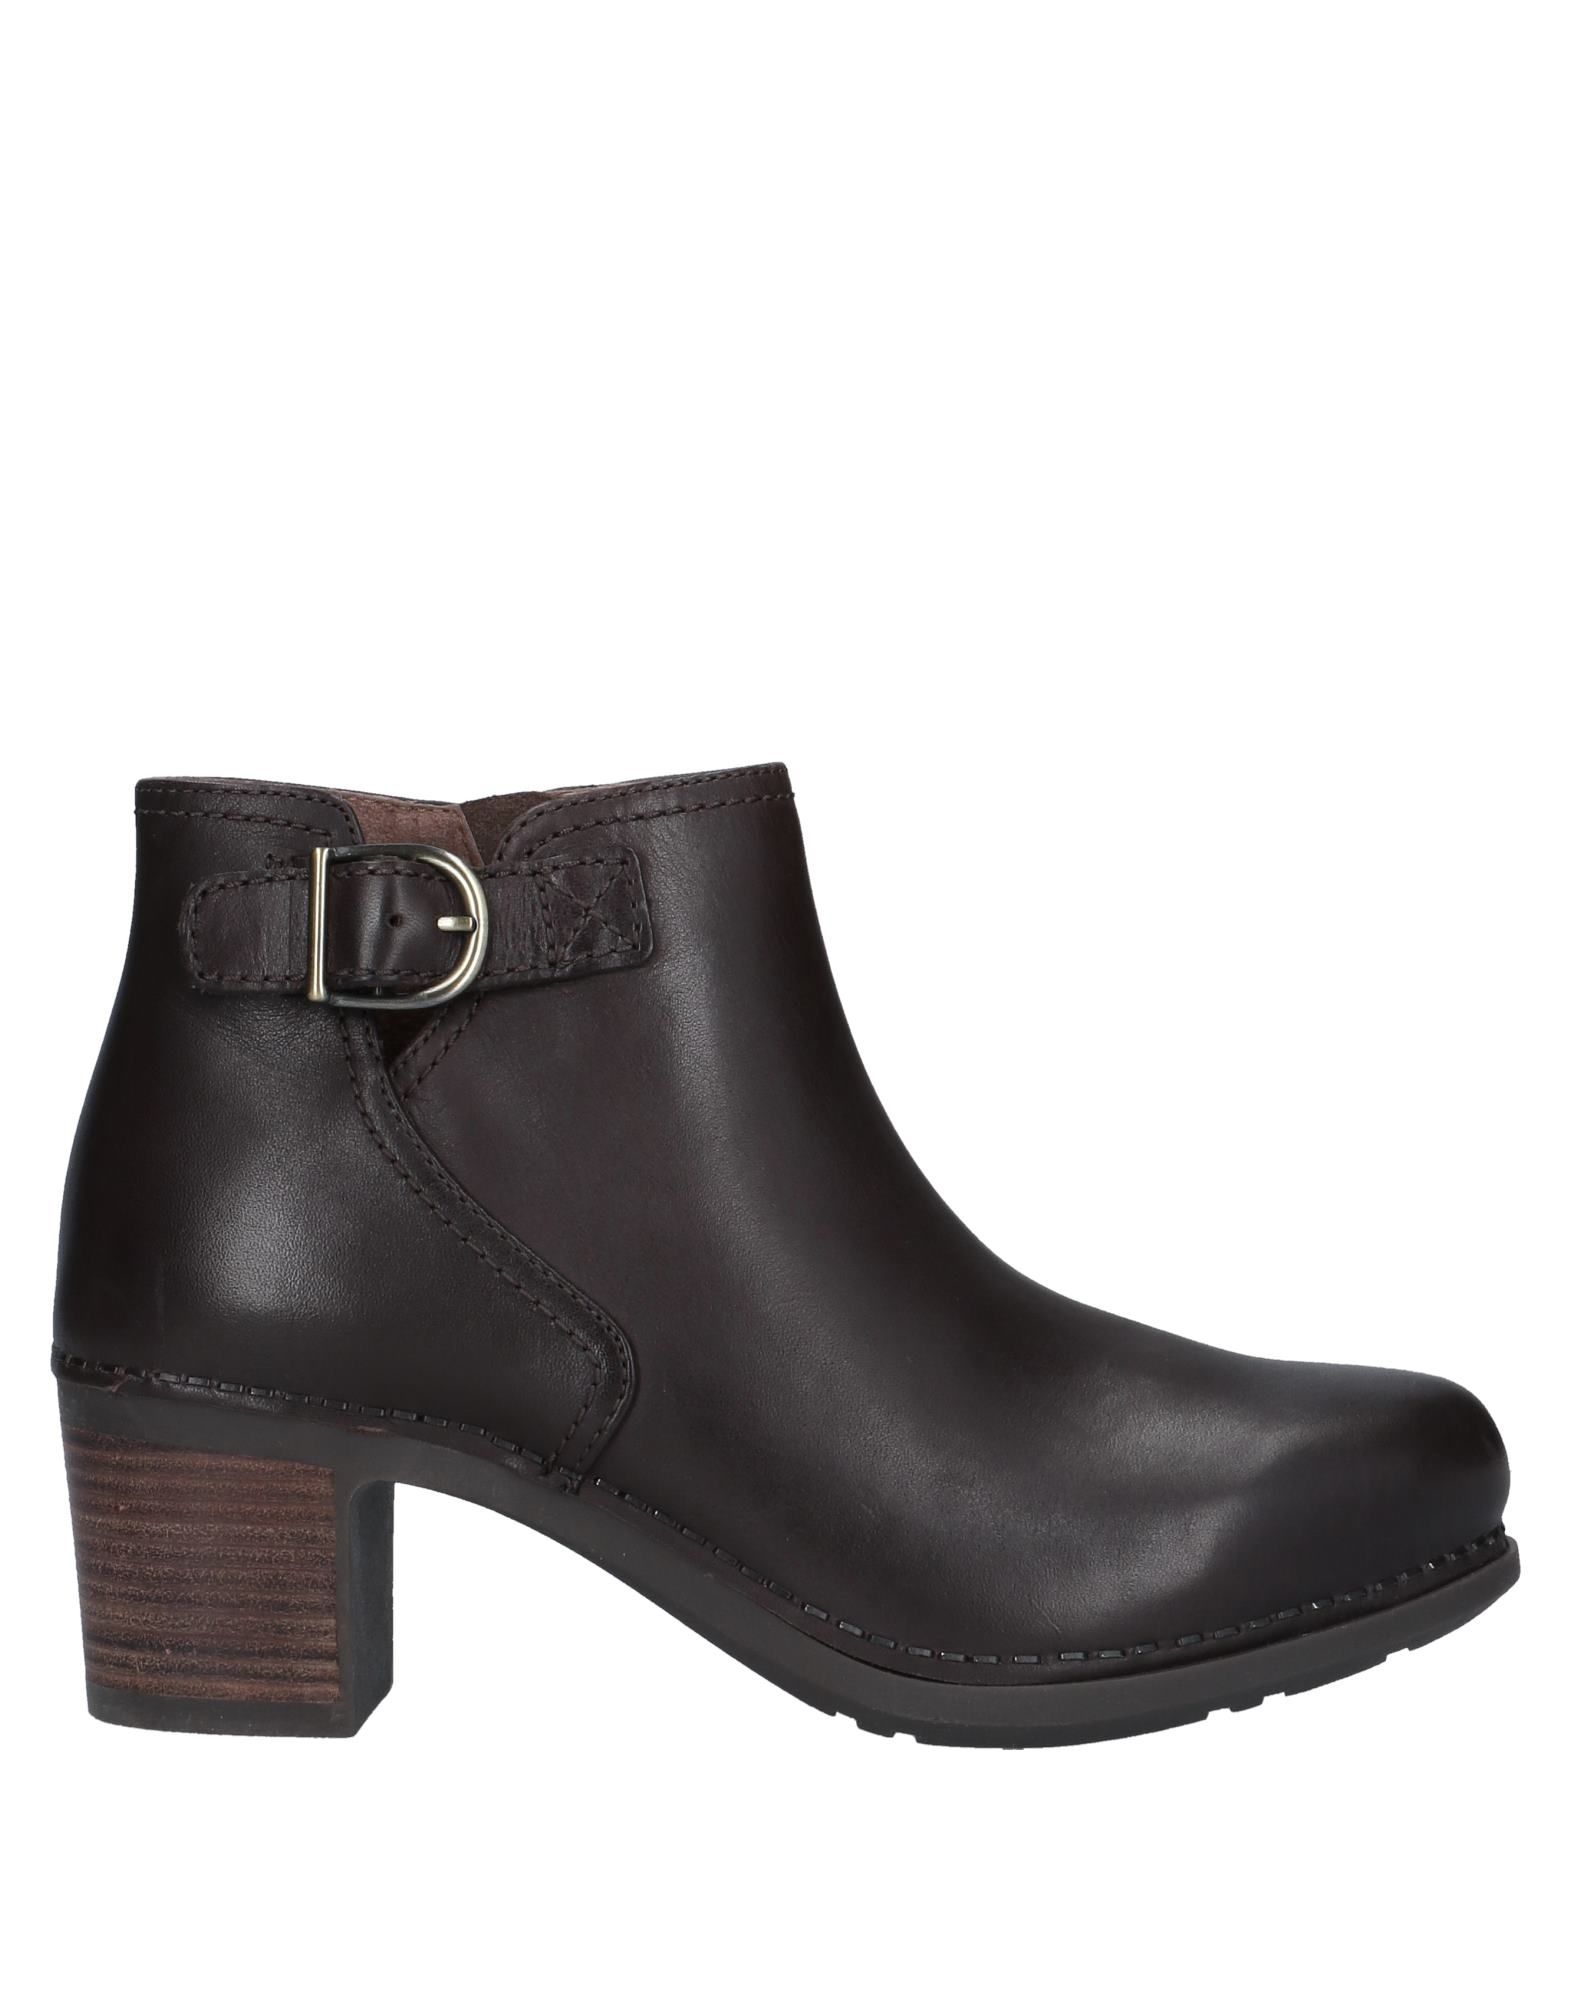 DANSKO Ankle boots. buckle, solid color, zip, round toeline, square heel, leather lining, rubber cleated sole, contains non-textile parts of animal origin. Soft Leather